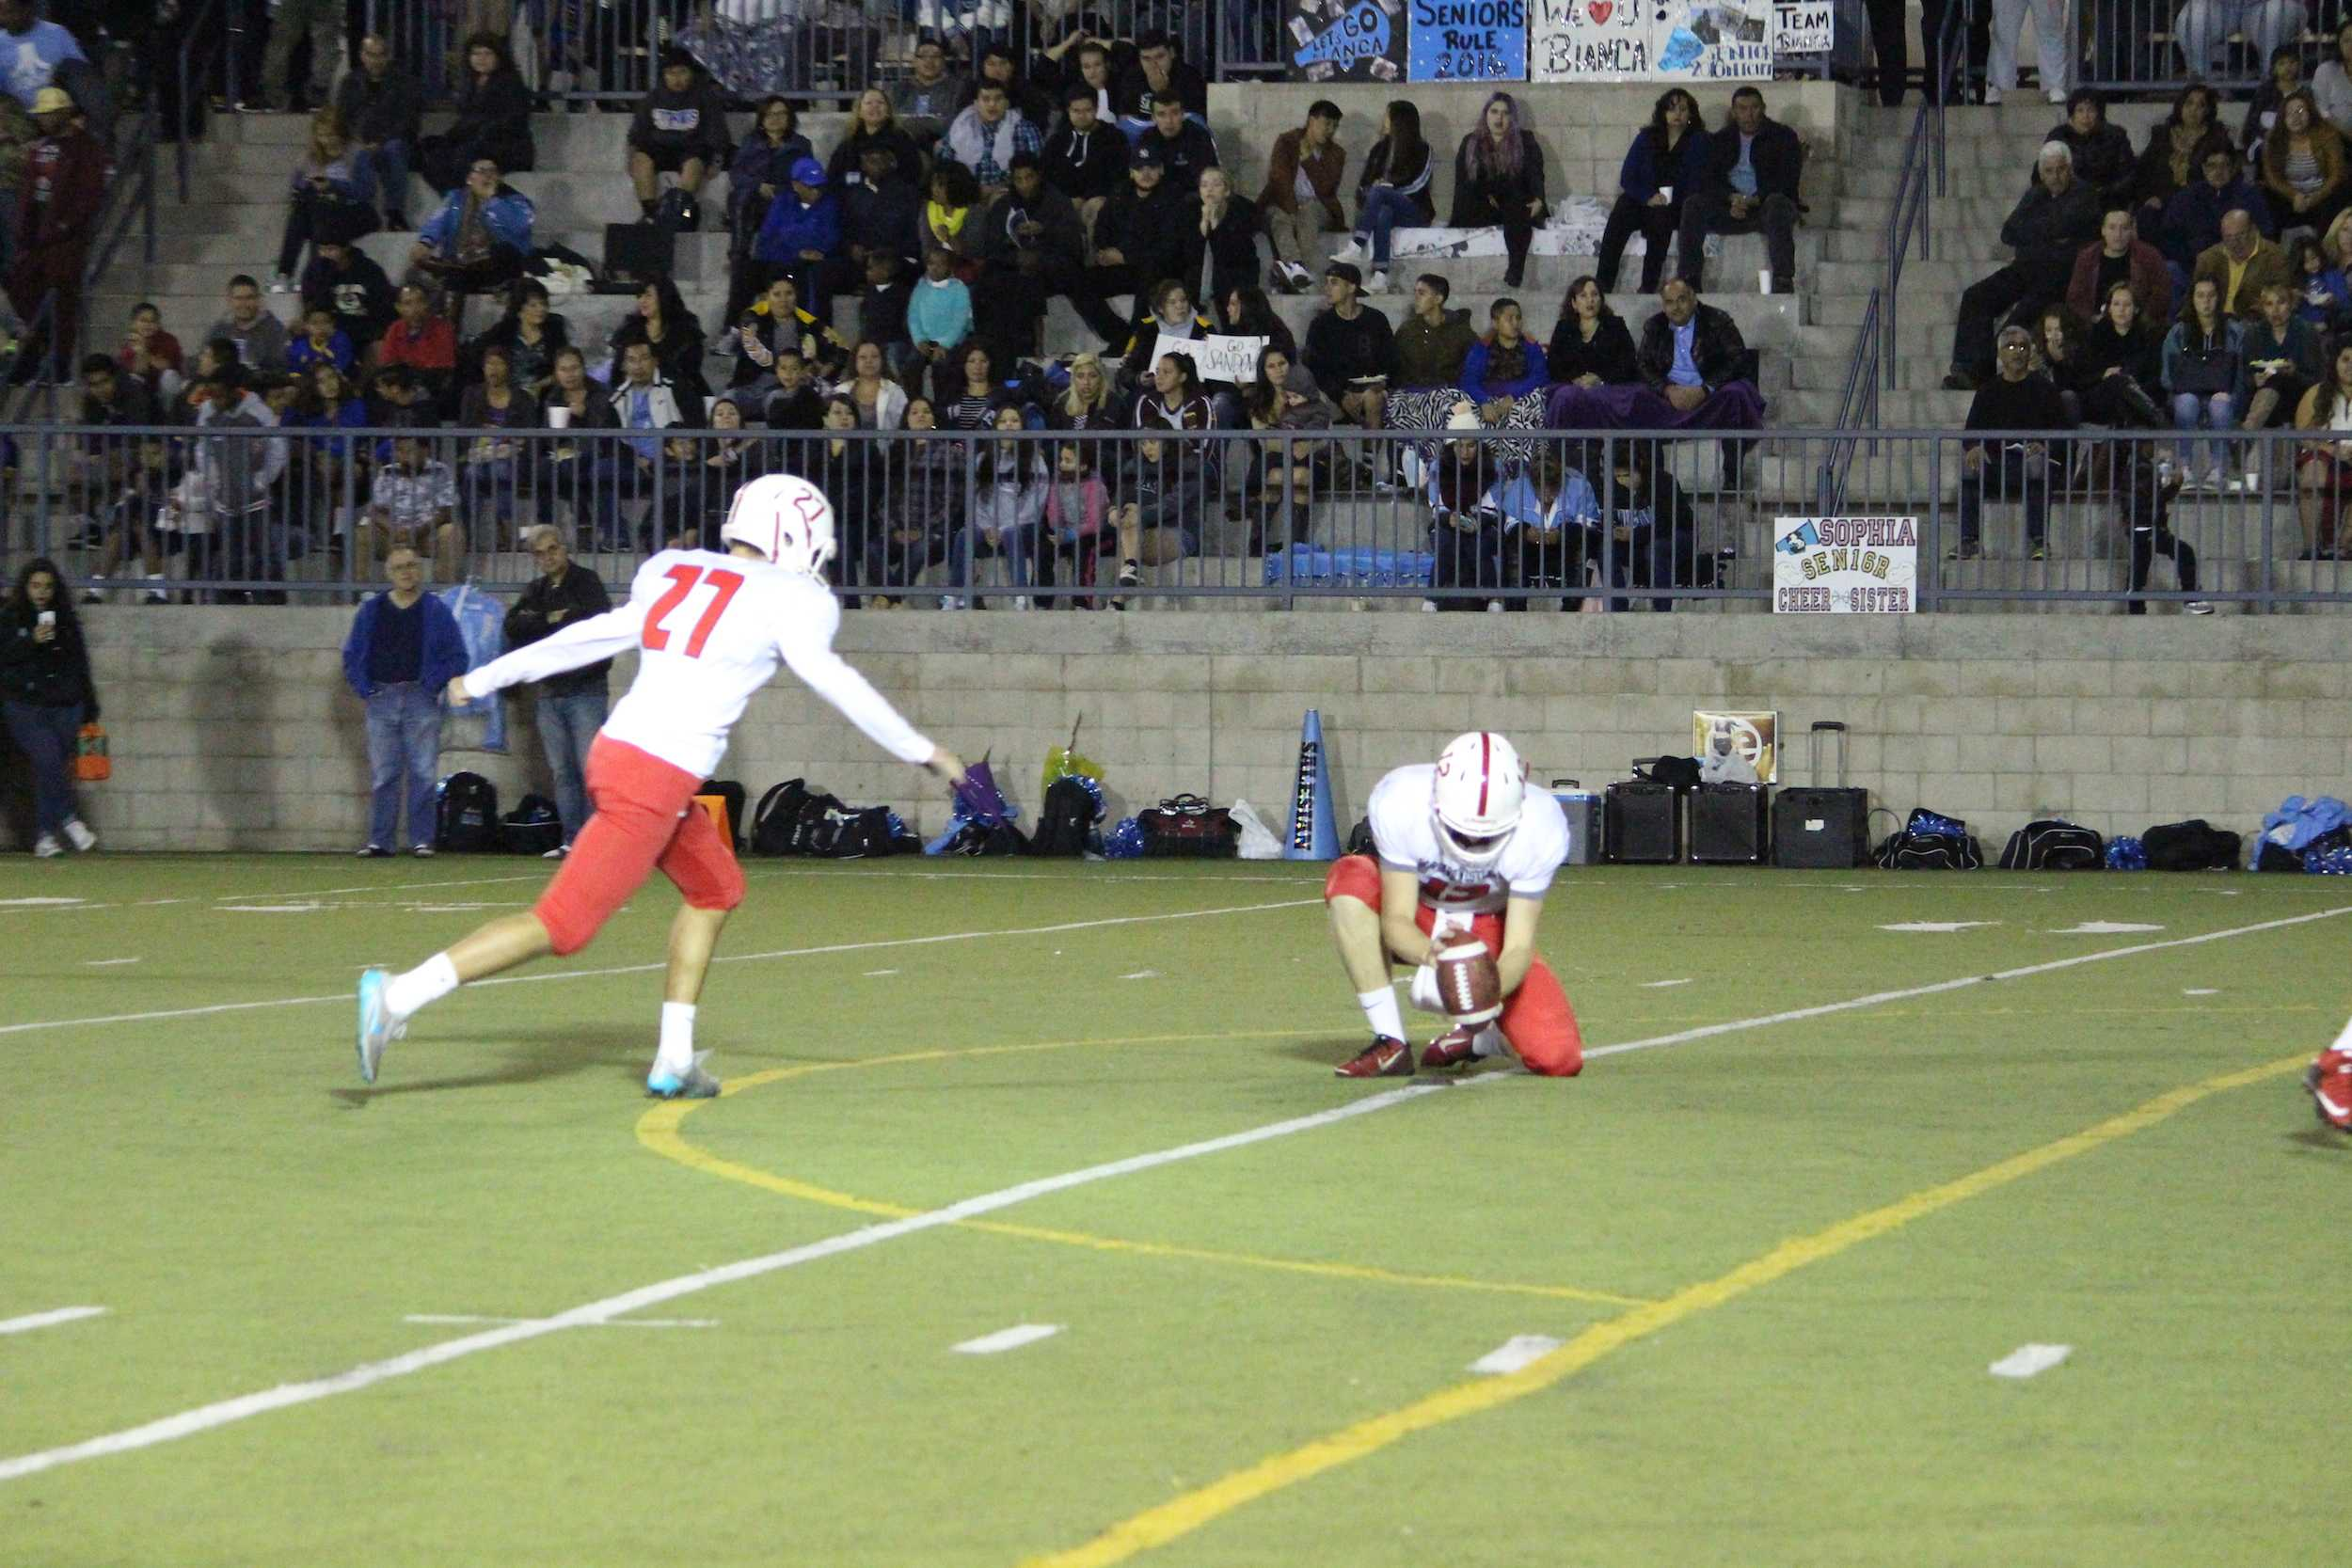 Josh Lyons '17 kicks an extra point.